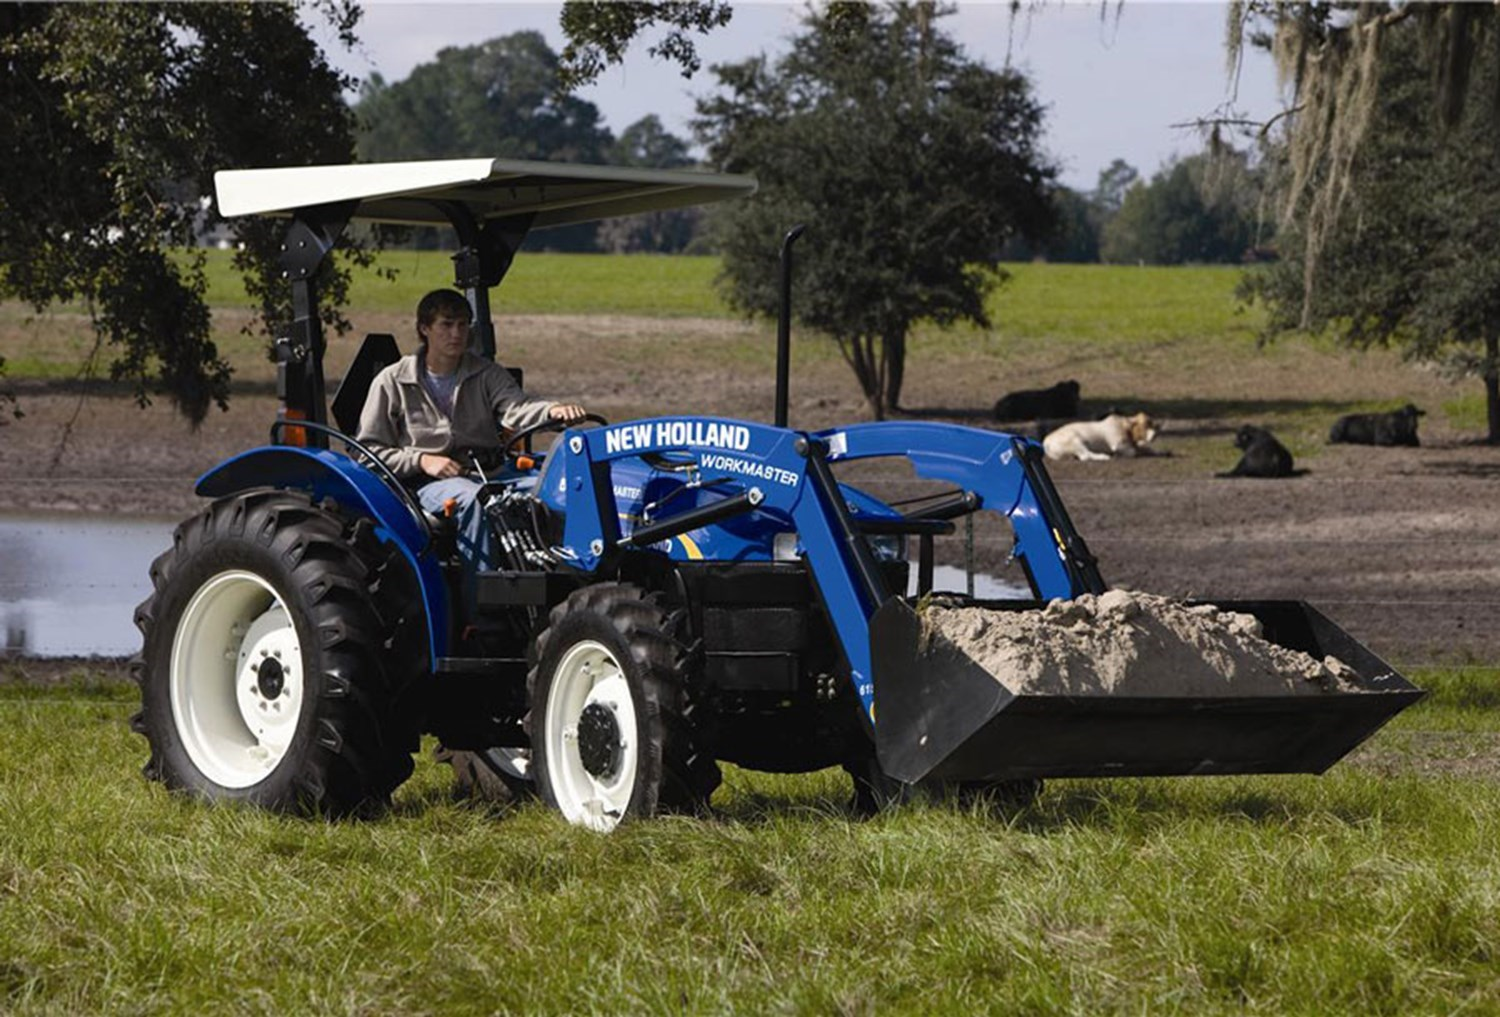 NEW HOLLAND WORKMASTER 45 4WD